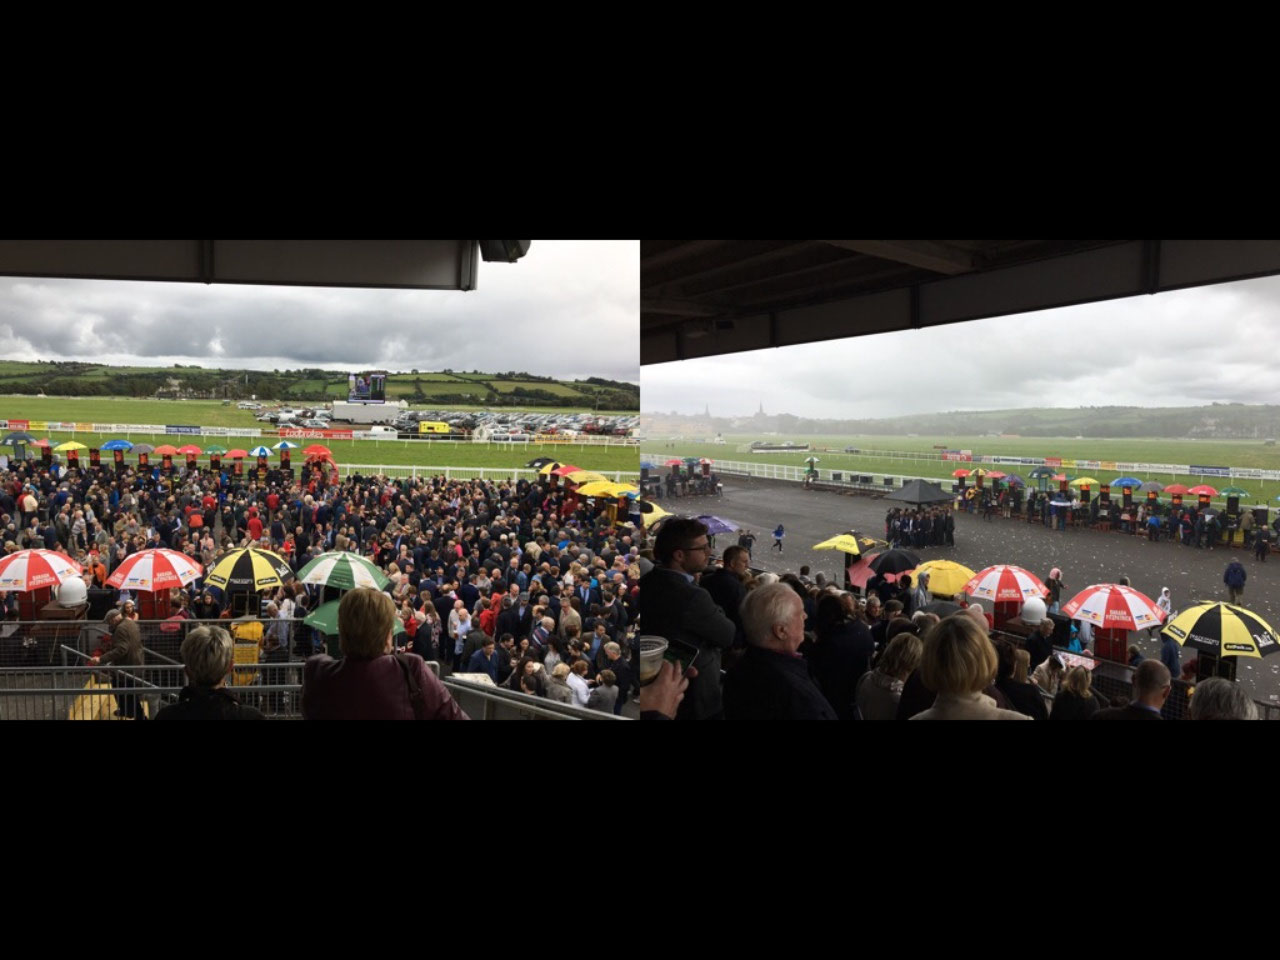 This is what happens when it rains at the races!